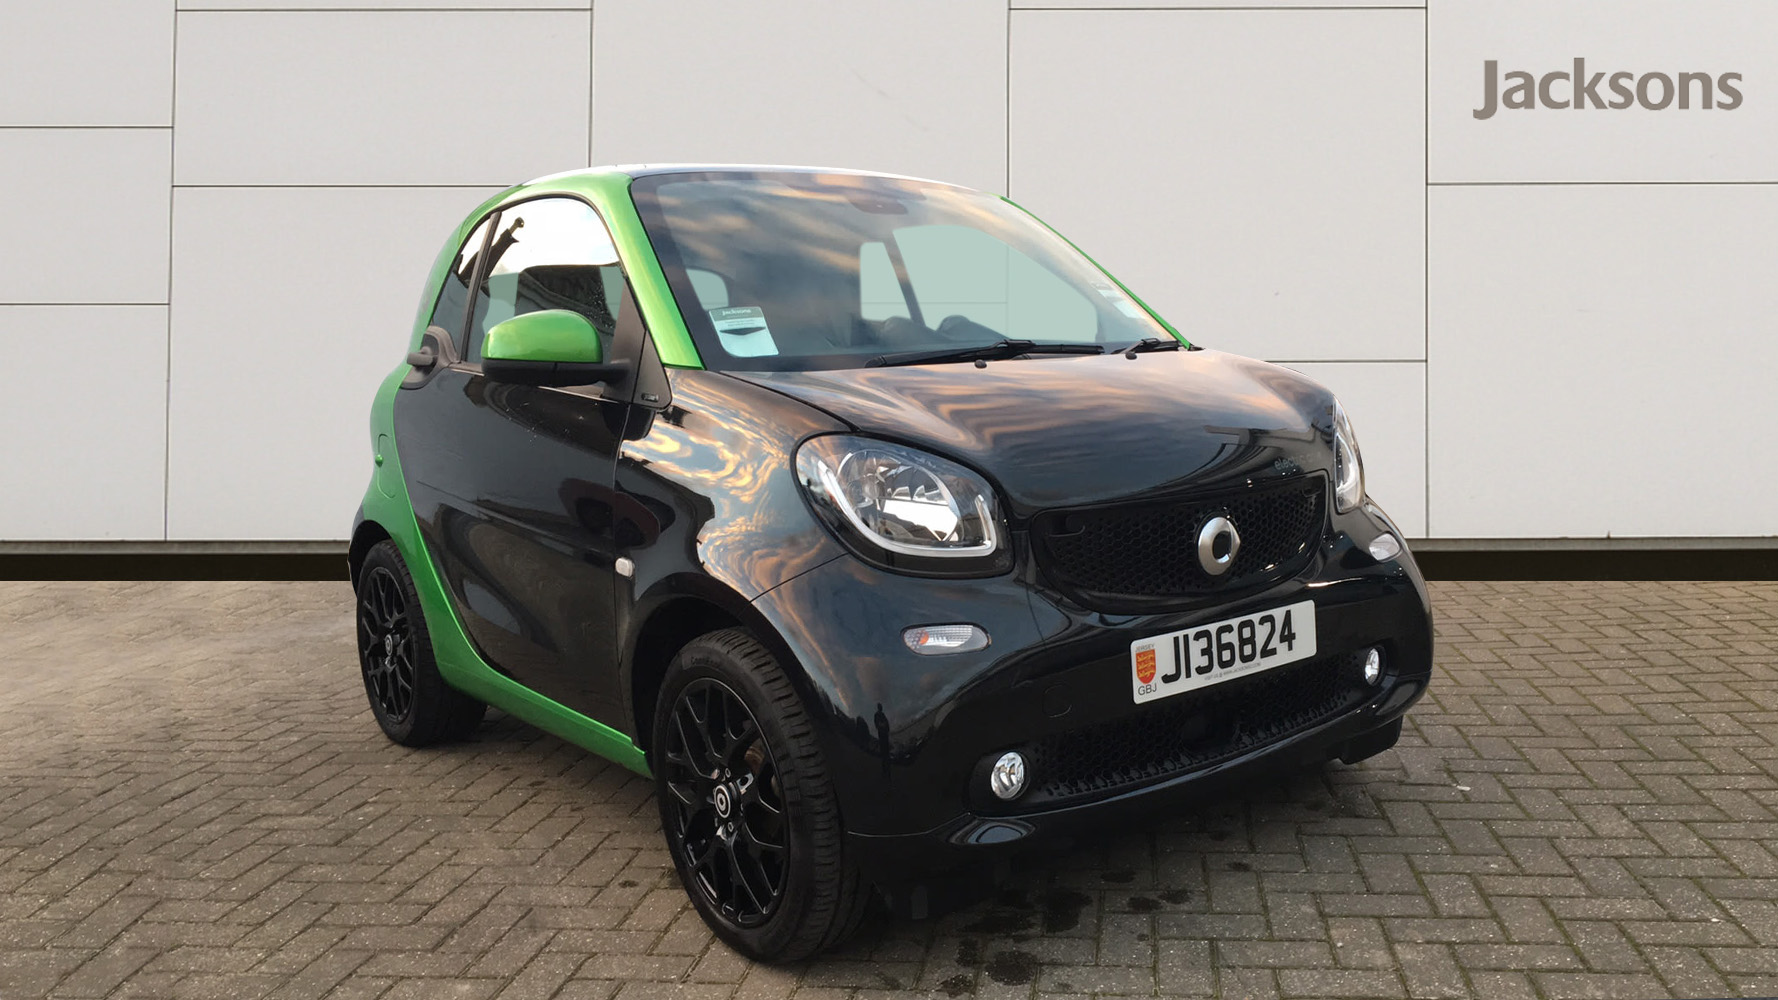 Smart Fortwo 16 995 Key Facts